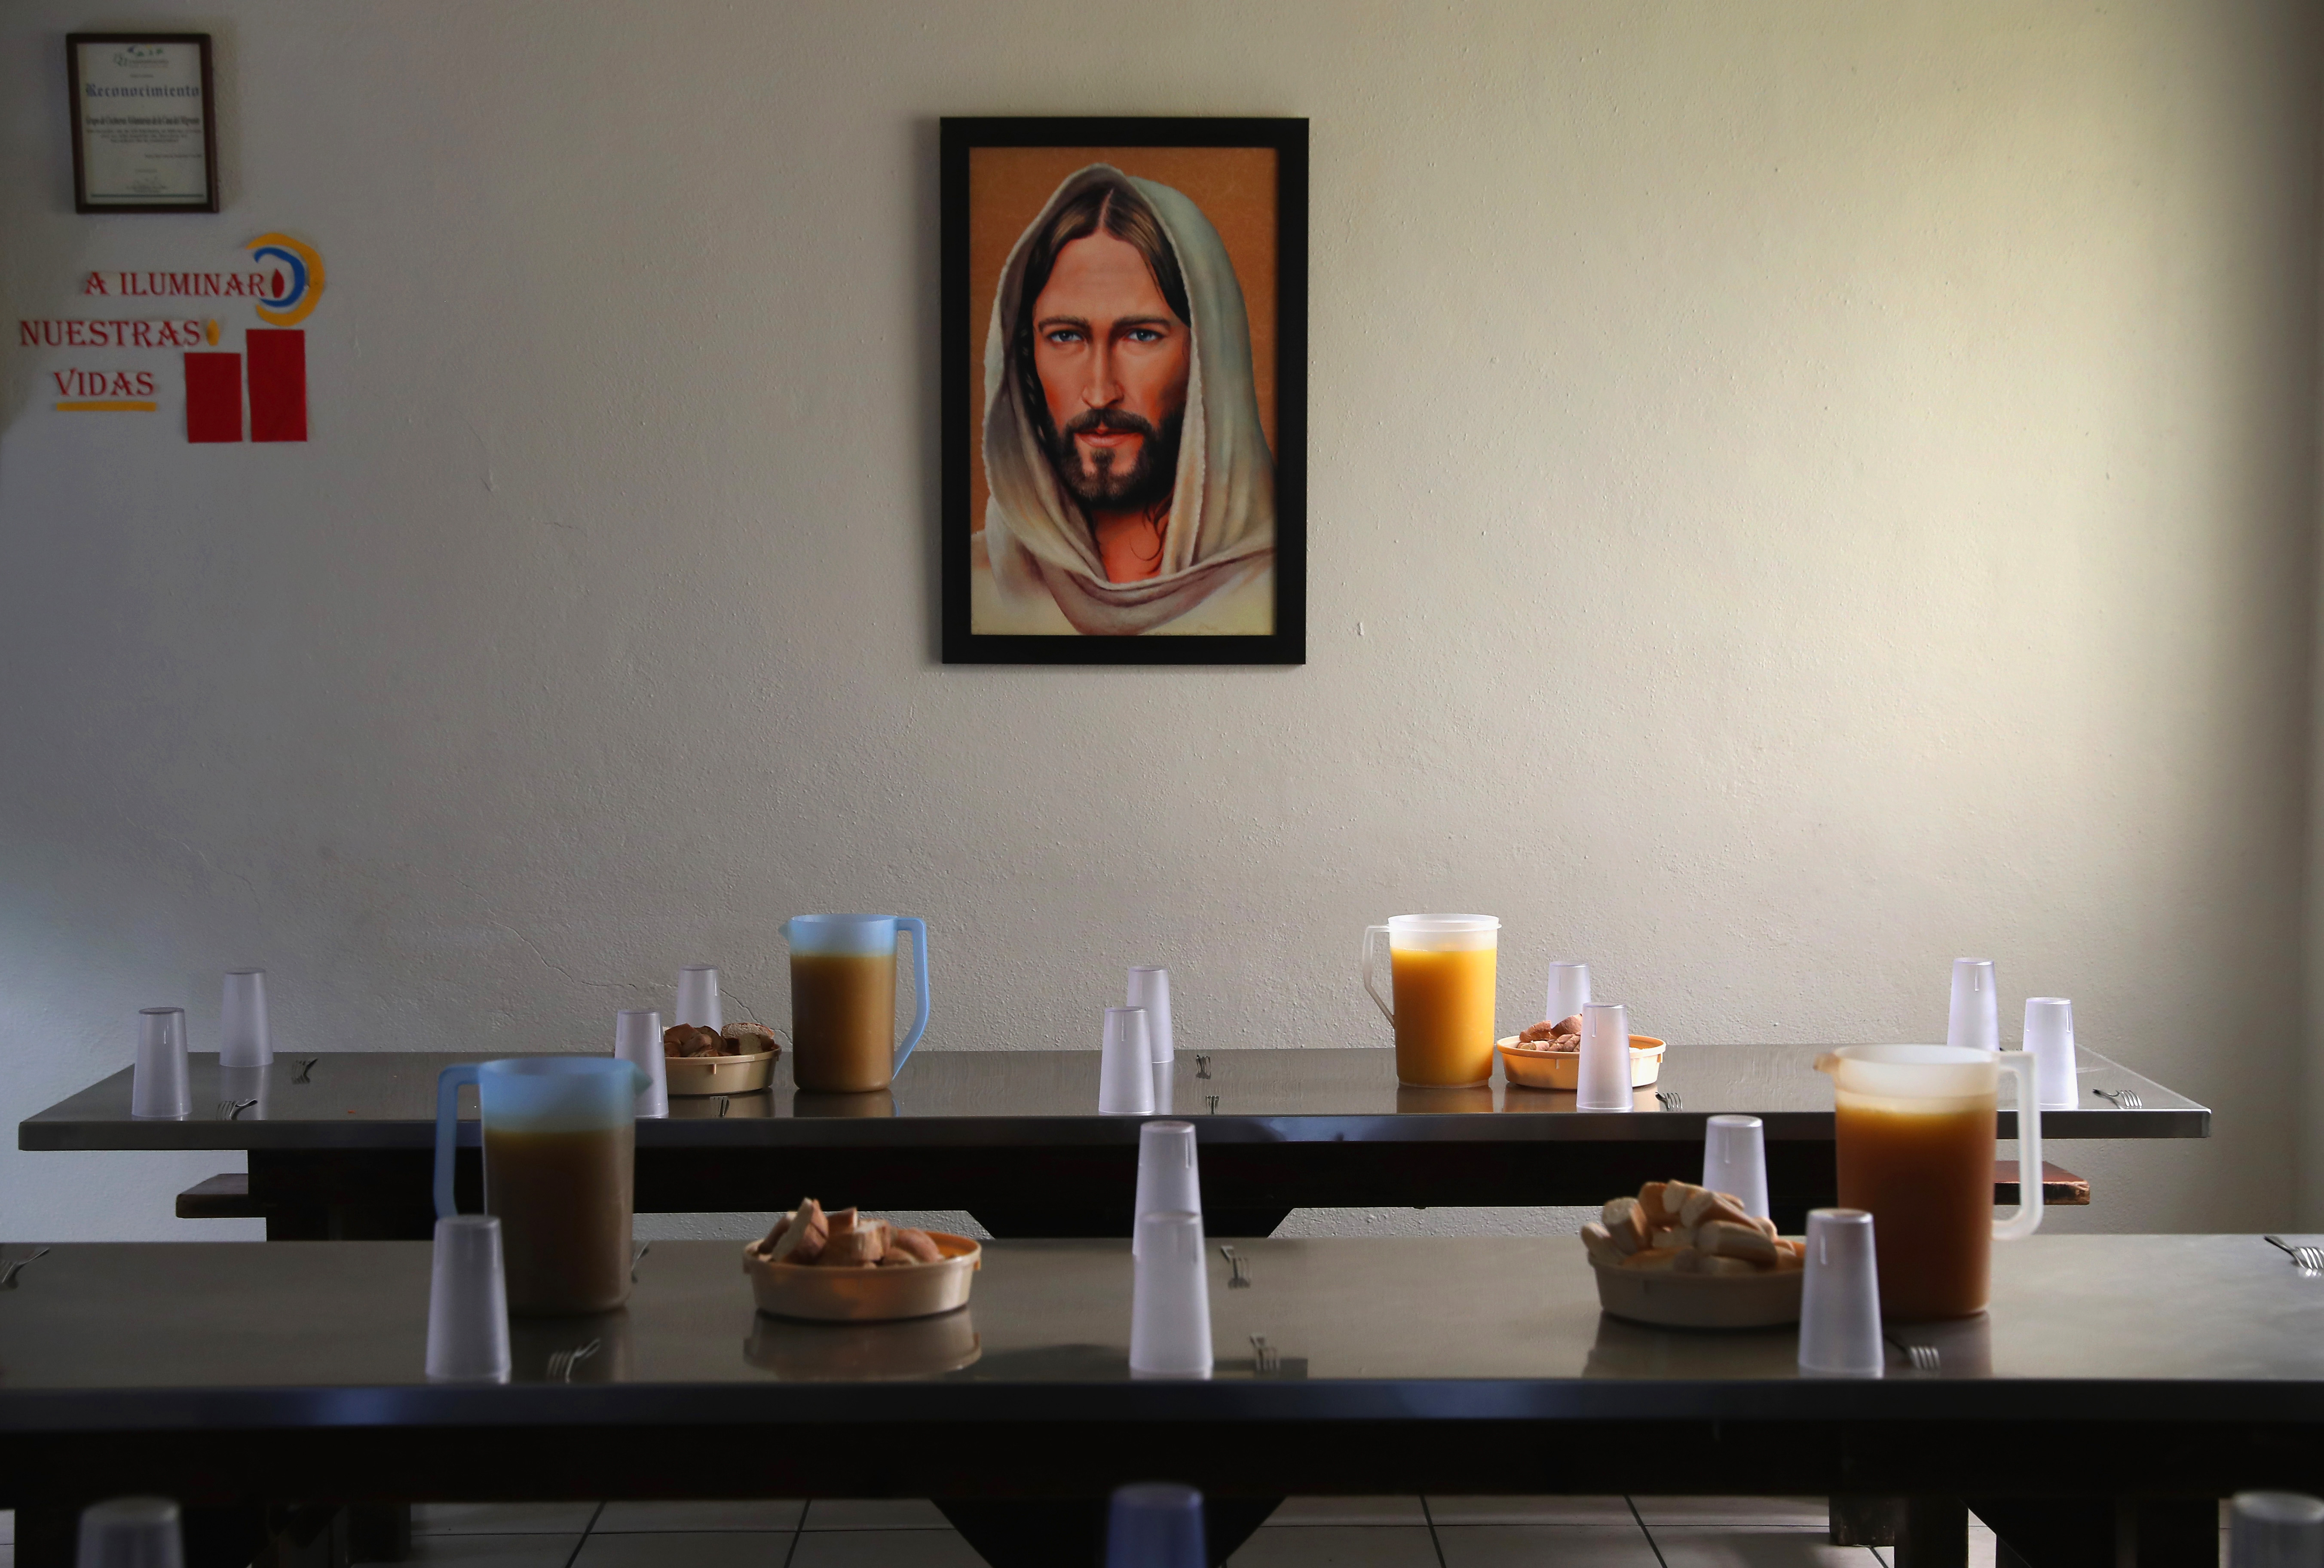 Dinner tables await immigrants, many of them deportees from the United States, at the Casa del Migrante Sept. 23, 2016 in Tijuana, Mexico. The shelter, run by Catholic priests, is part of the Coalicion Pro Defensa, which aids immigrants and asylum applicants seeking entry into the United States. The coalition of immigrant advocates has helped thousands of migrants on their journey north and many more after being being deported from the United States.